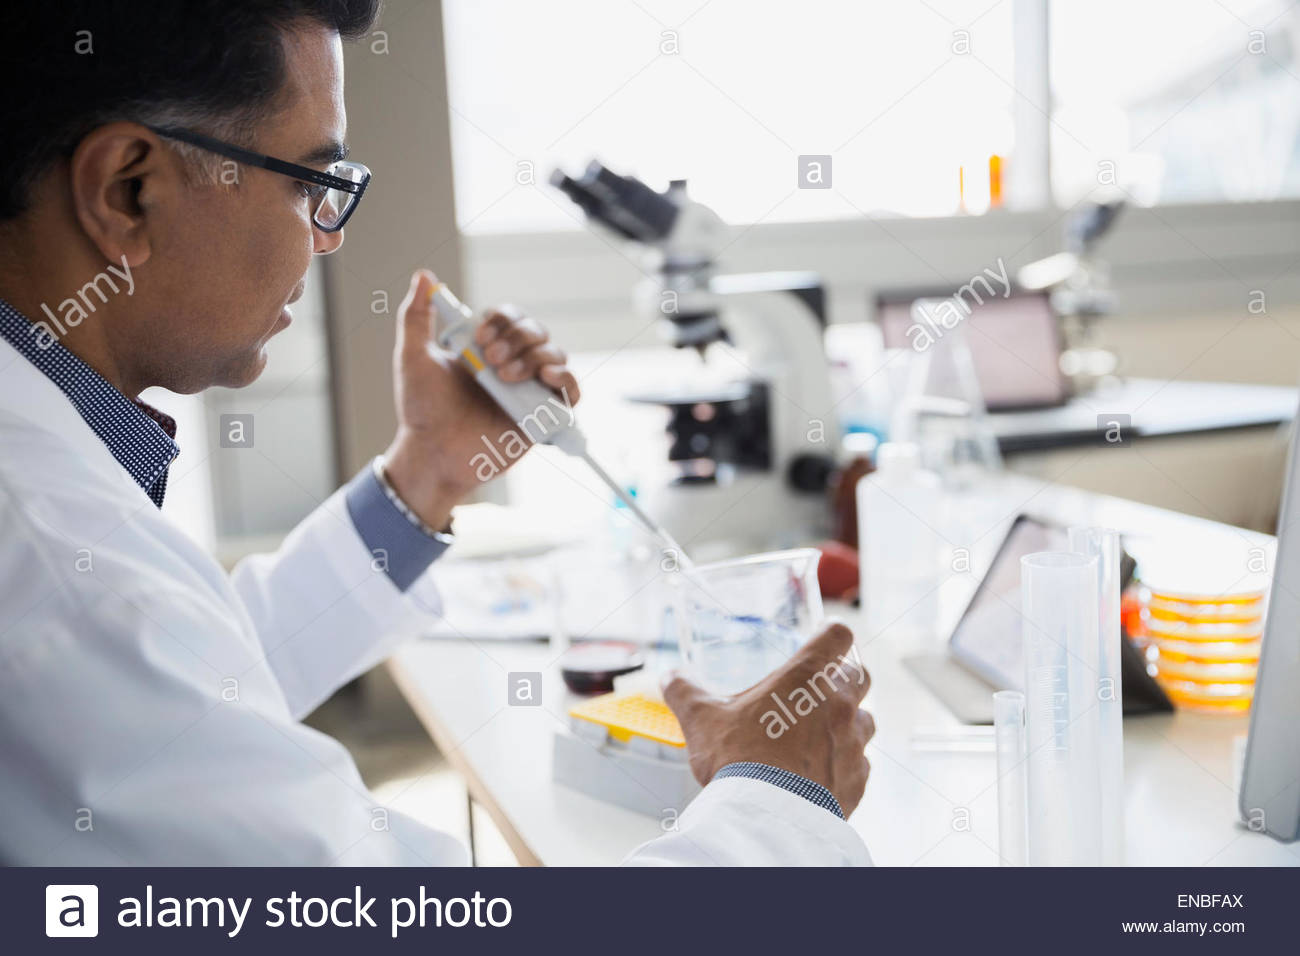 Scientist adding liquid to beaker with pipette laboratory - Stock Image